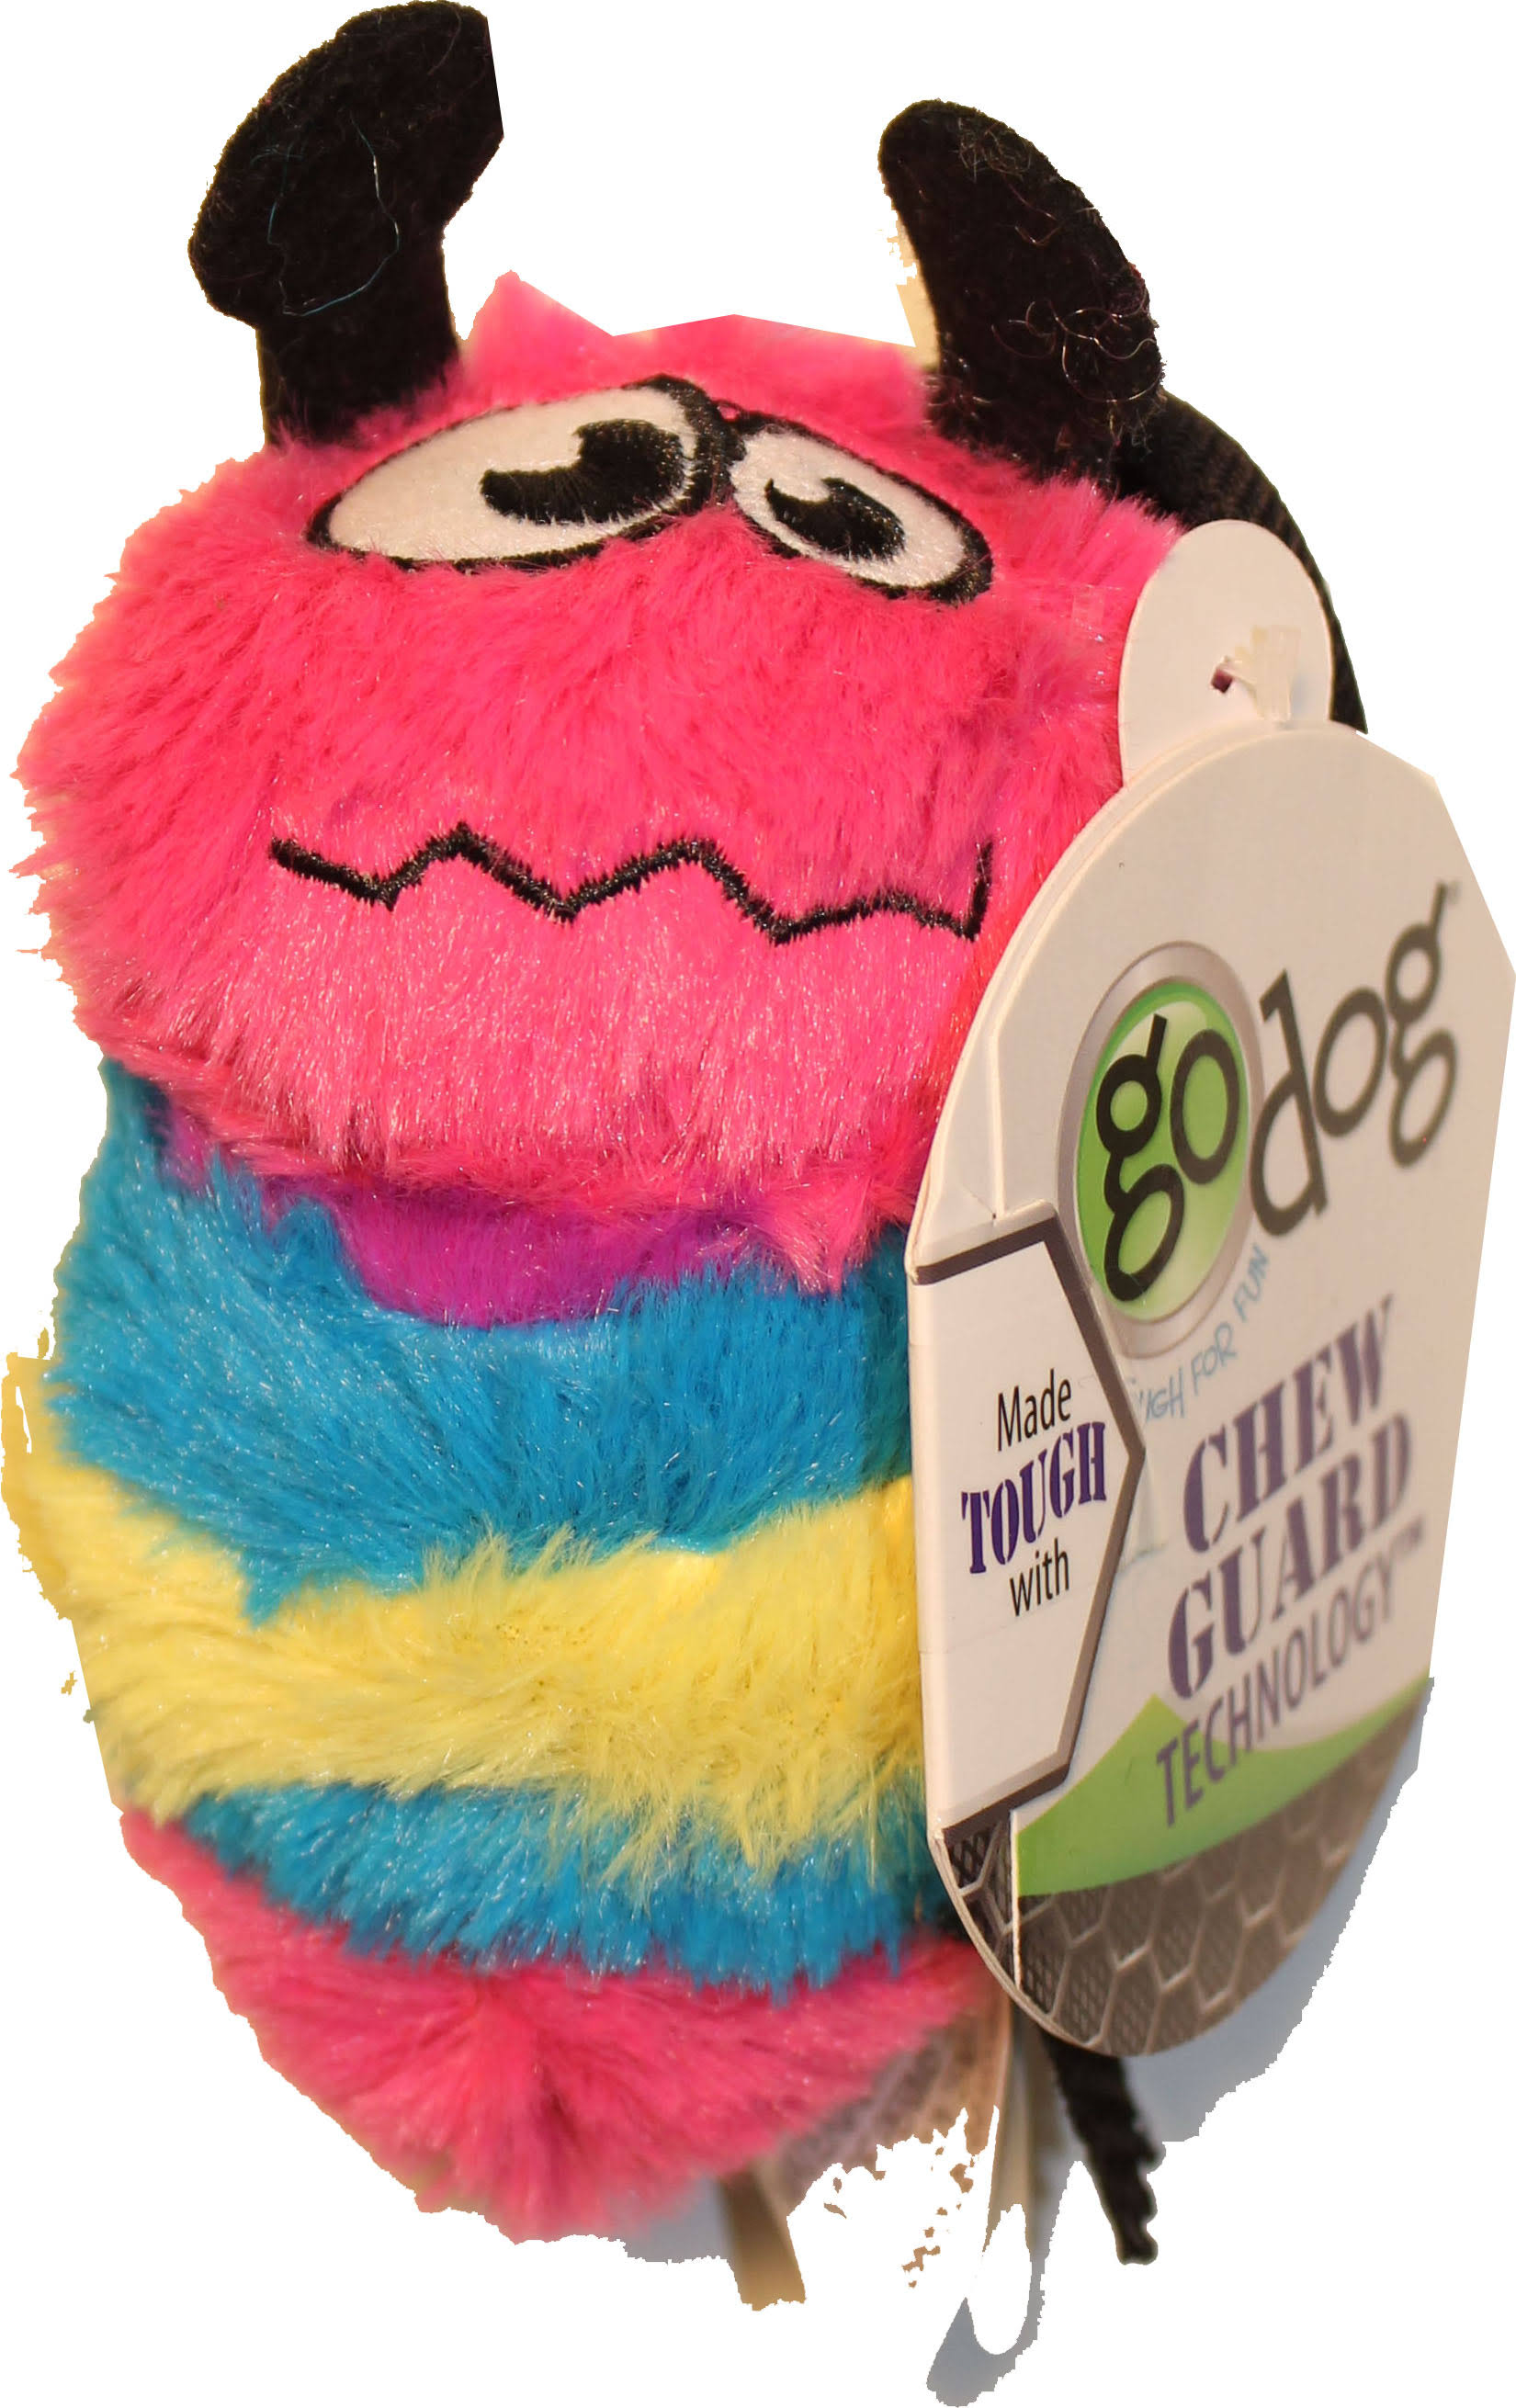 Godog Bee with Chew Guard Small / Rainbow